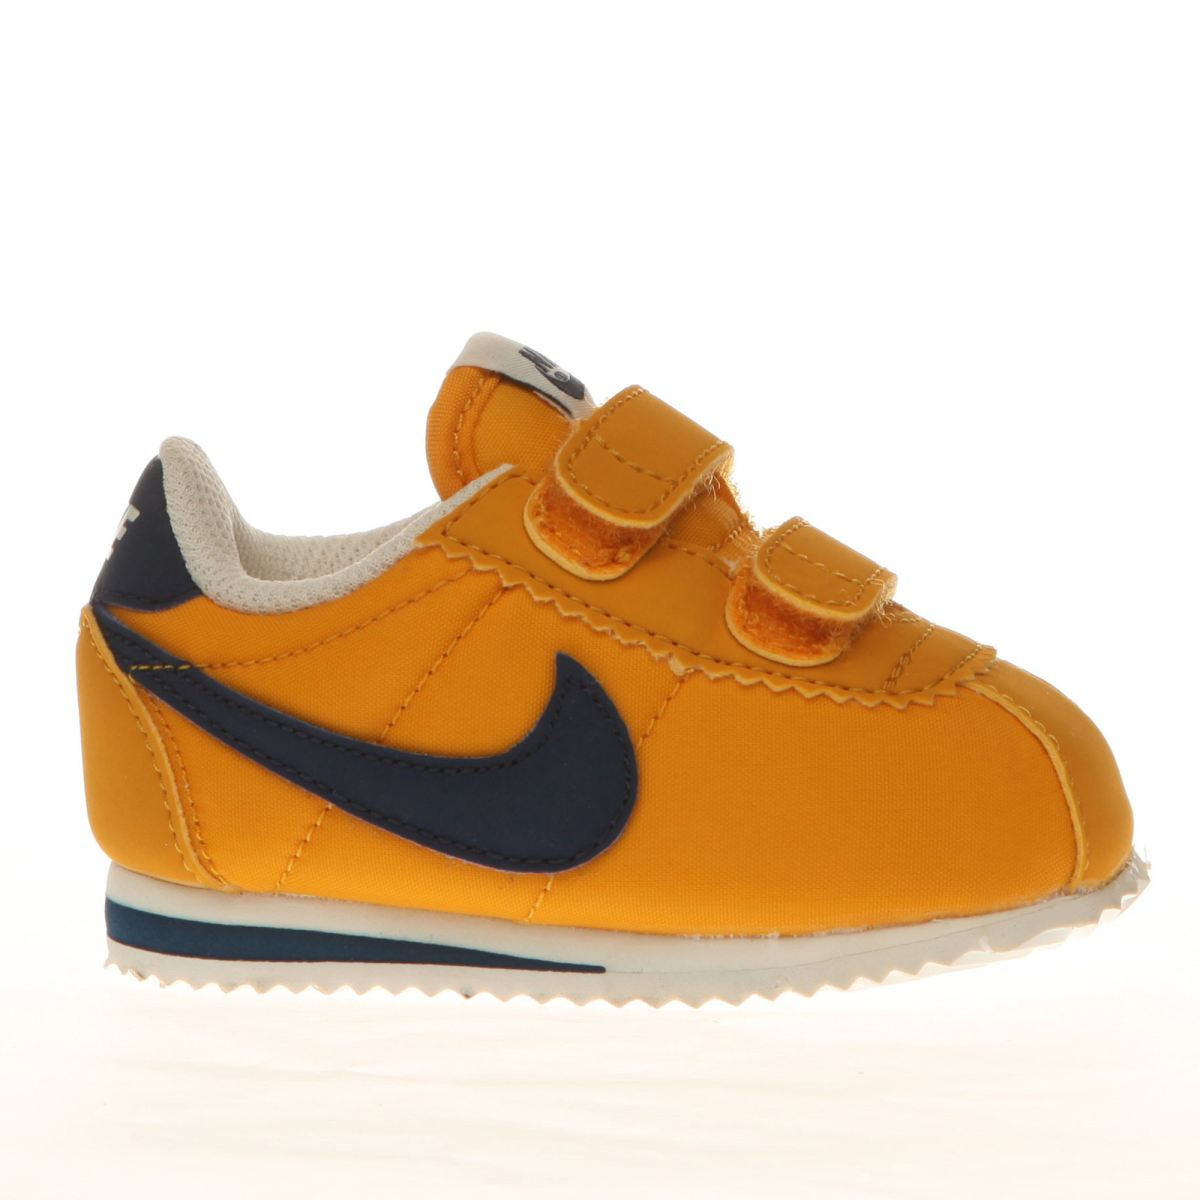 nike yellow cortez Girls Toddler Trainers